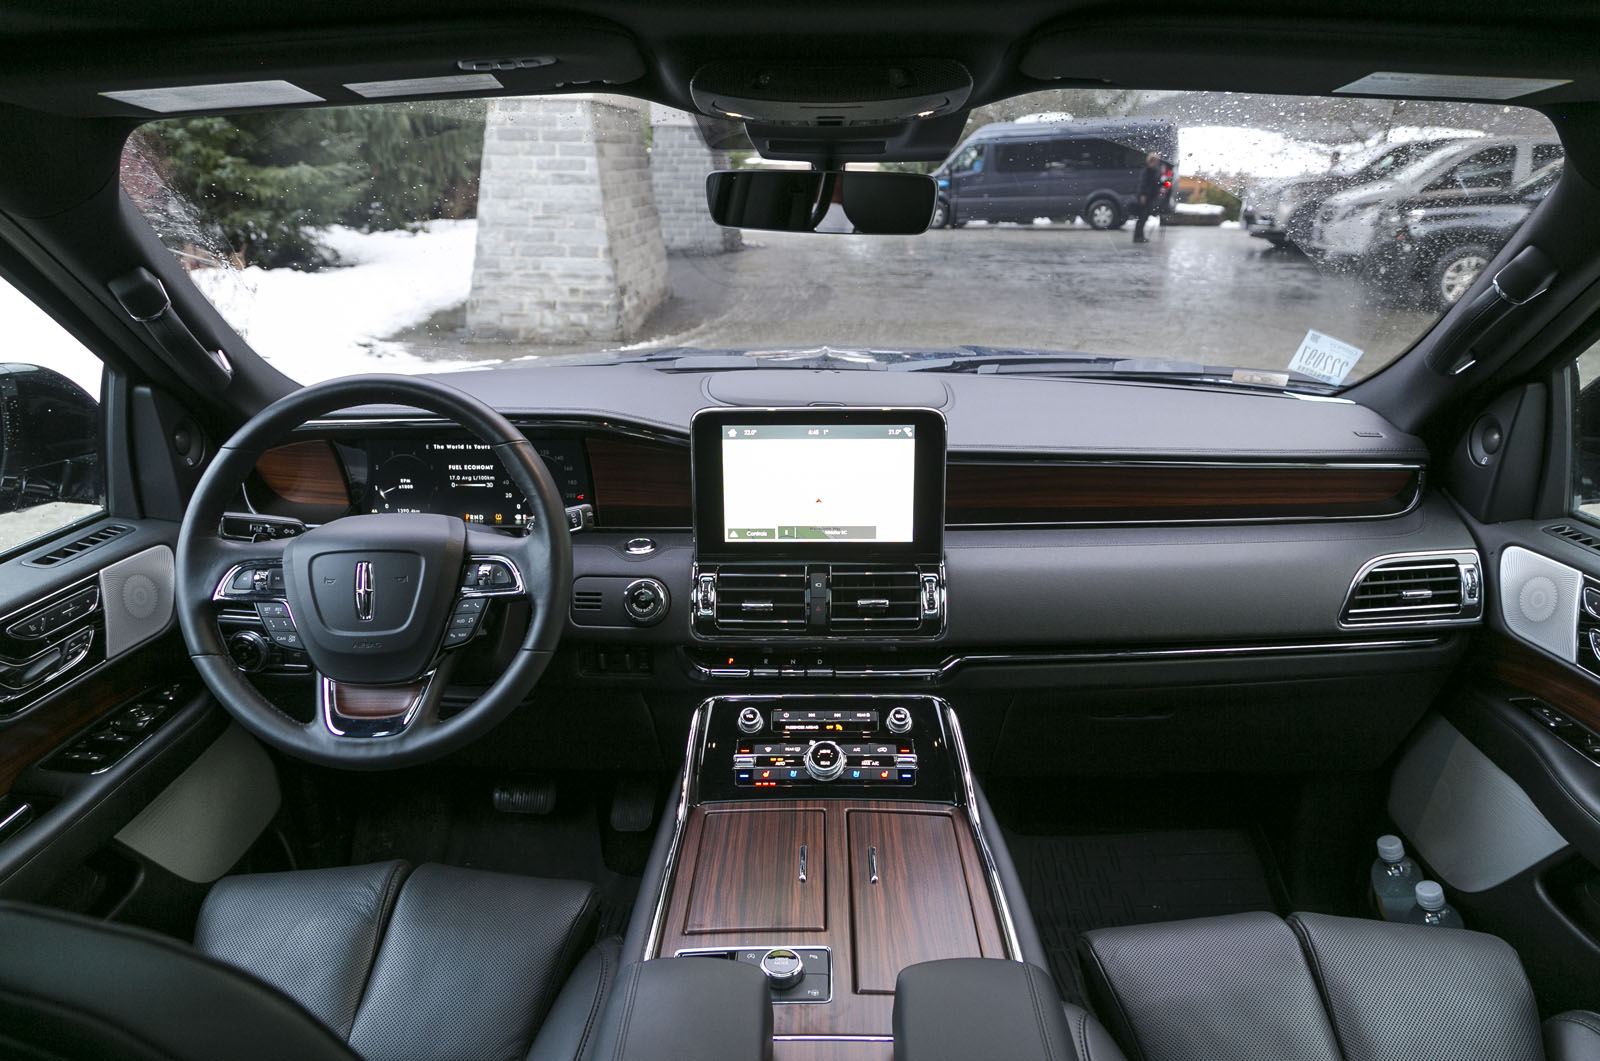 https://www.autoguide.com/blog/wp-content/gallery/2018-lincoln-navigator-review/2018-Lincoln-Navigator-6.jpg